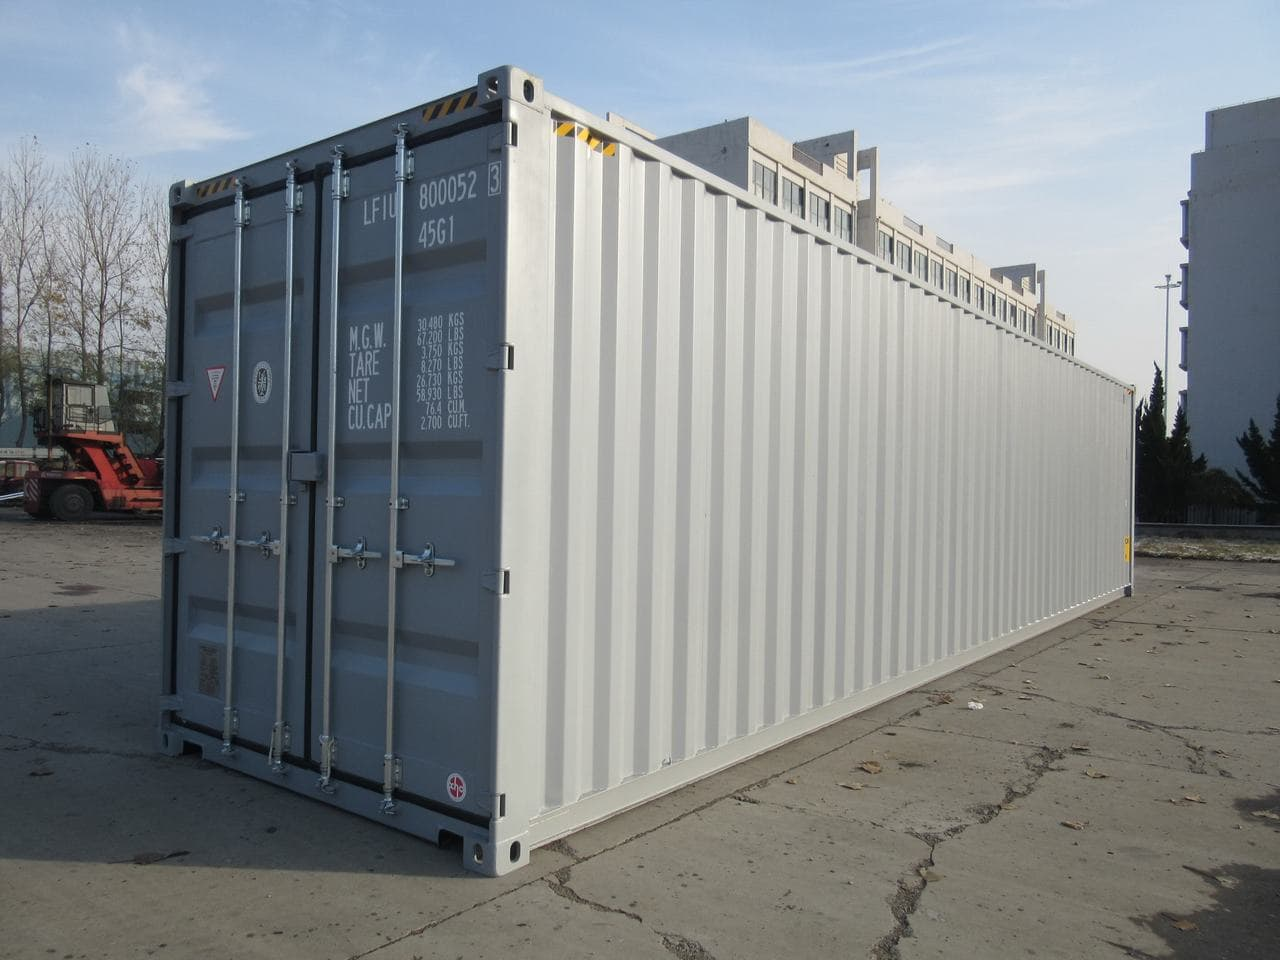 front view of a shipping container